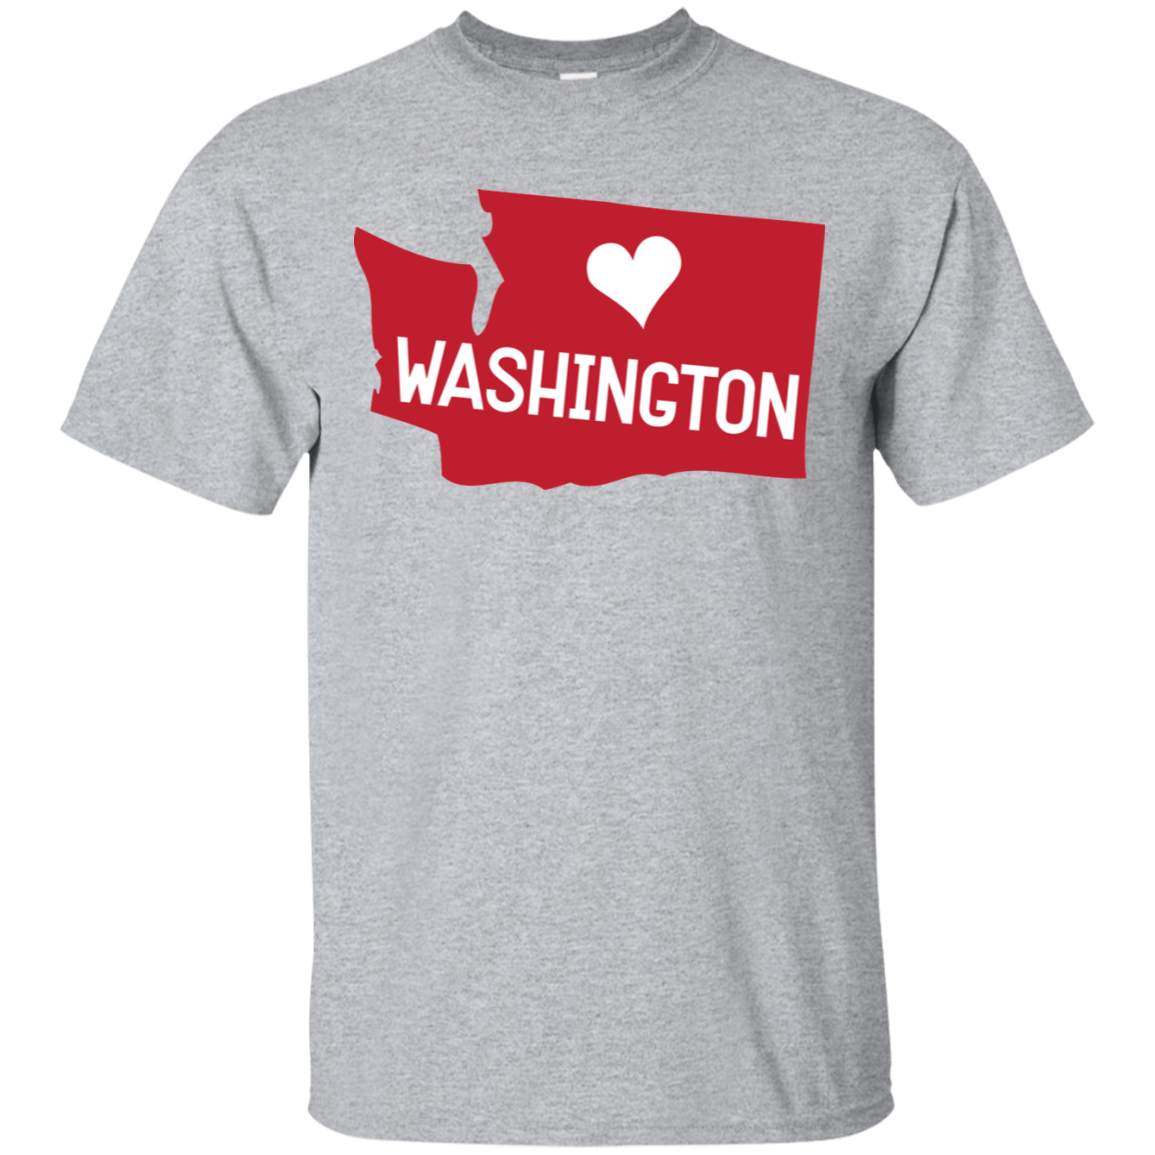 Home State Tshirt Washington